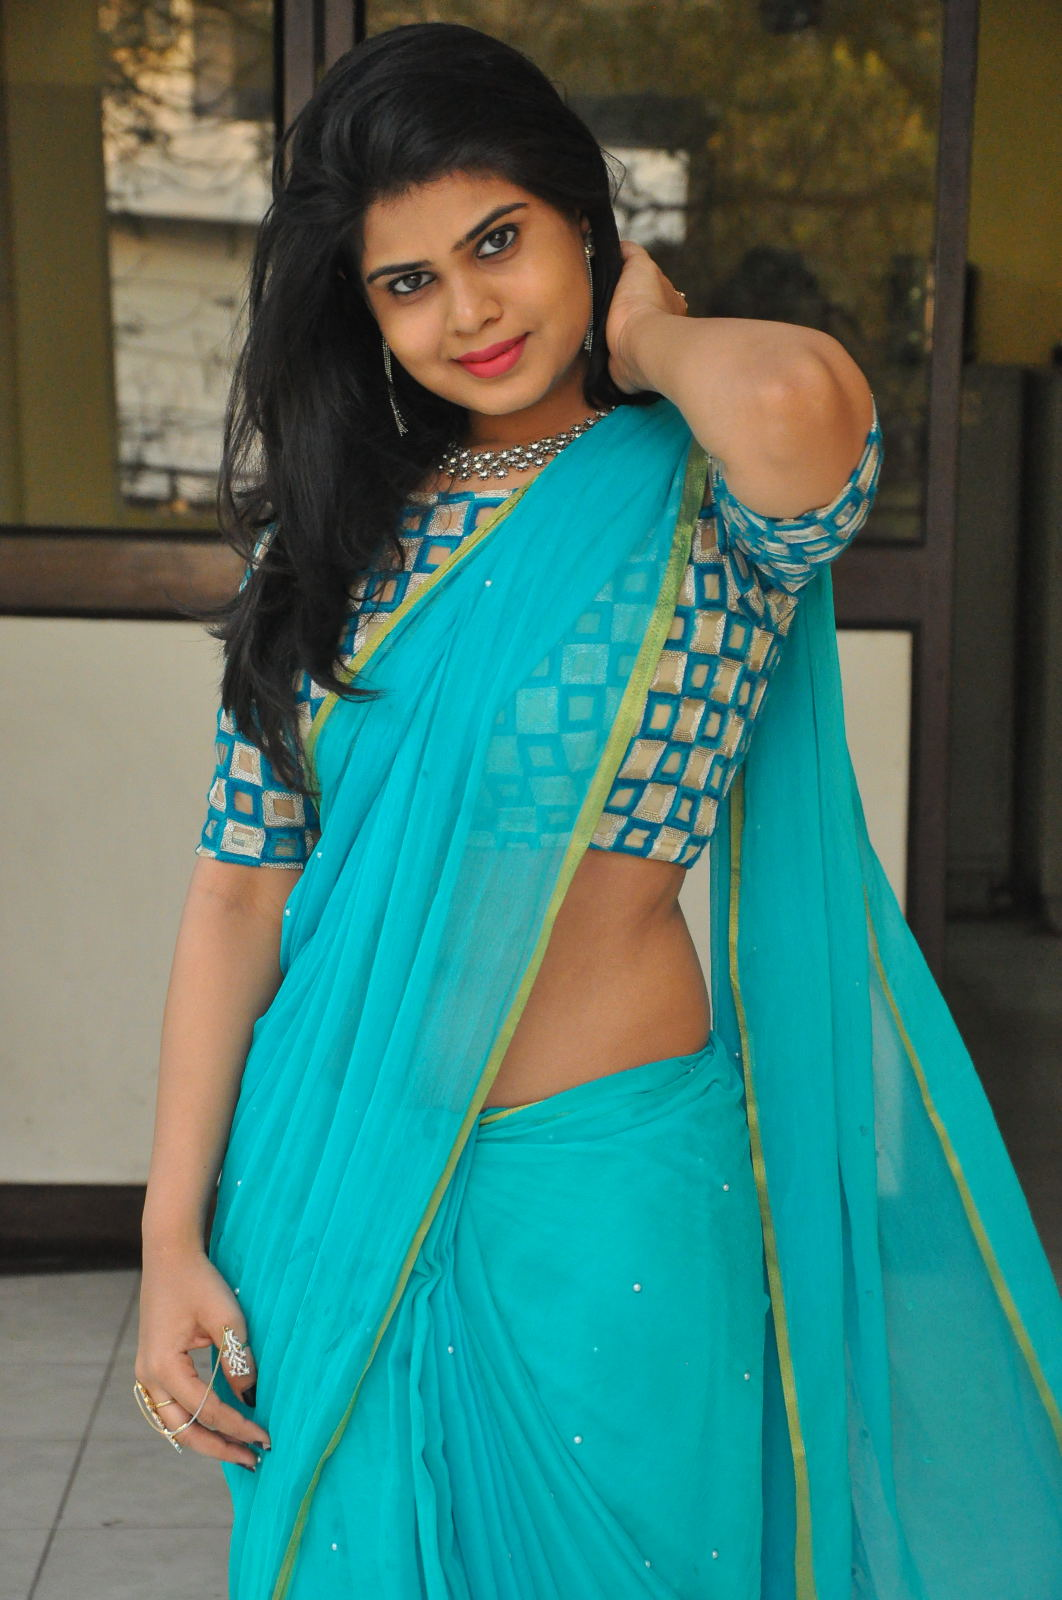 alekhya Brand New Sexy Photo Stills of Alekhya | Tollywood | Actresses Alekhya HOT pics 72